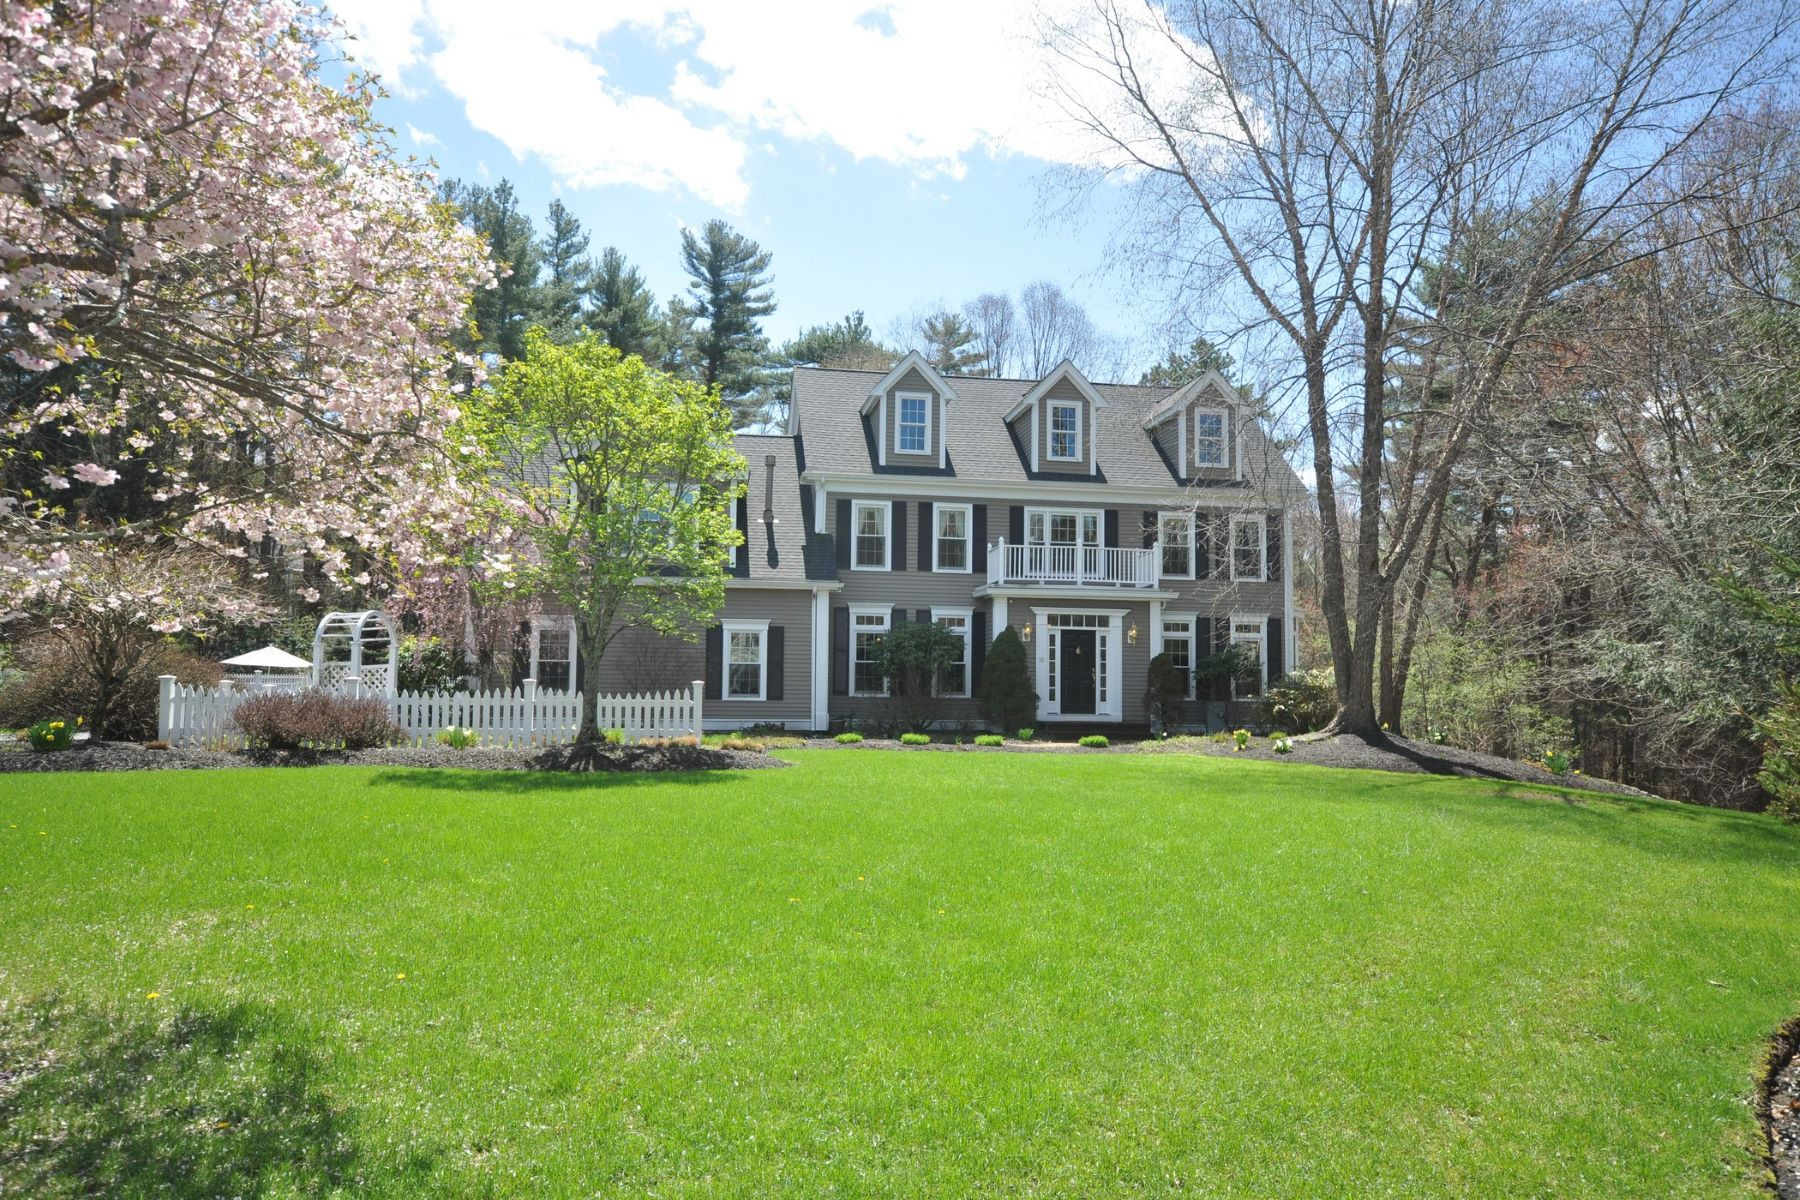 Single Family Home for Active at 10 Jade Walk, Medfield 10 Jade Walk Medfield, Massachusetts 02052 United States